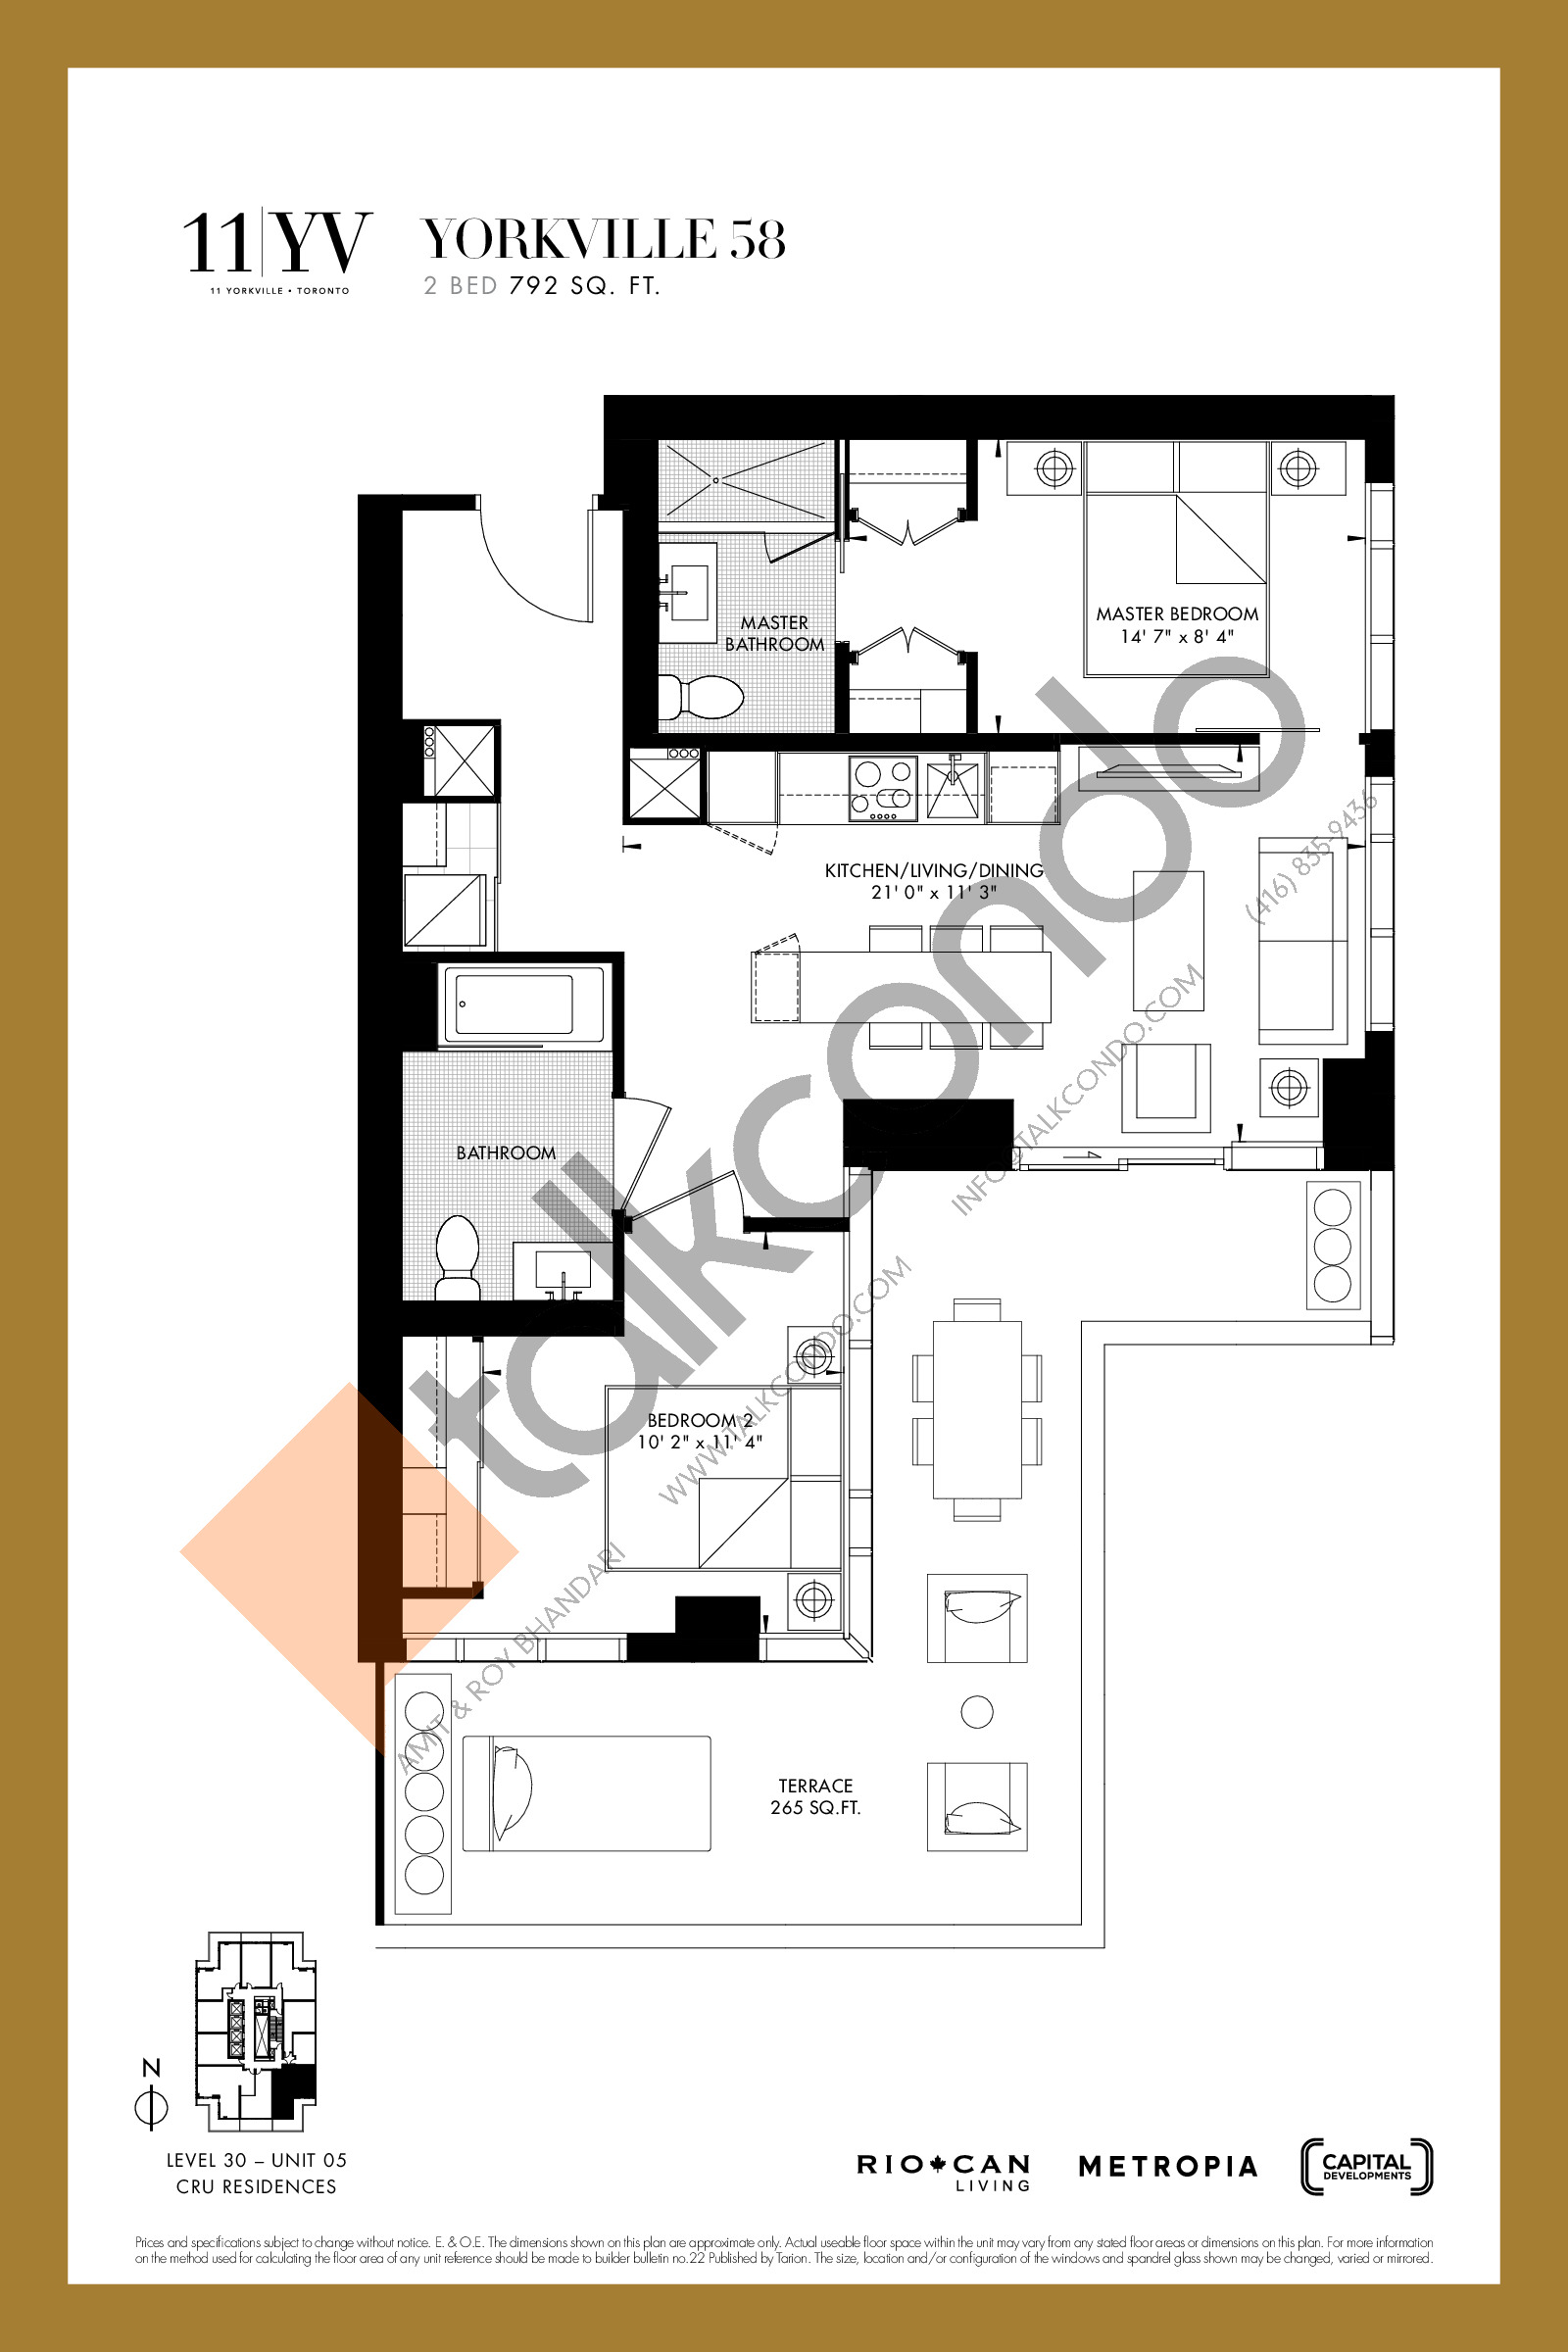 Yorkville 58 Floor Plan at 11YV Condos - 792 sq.ft